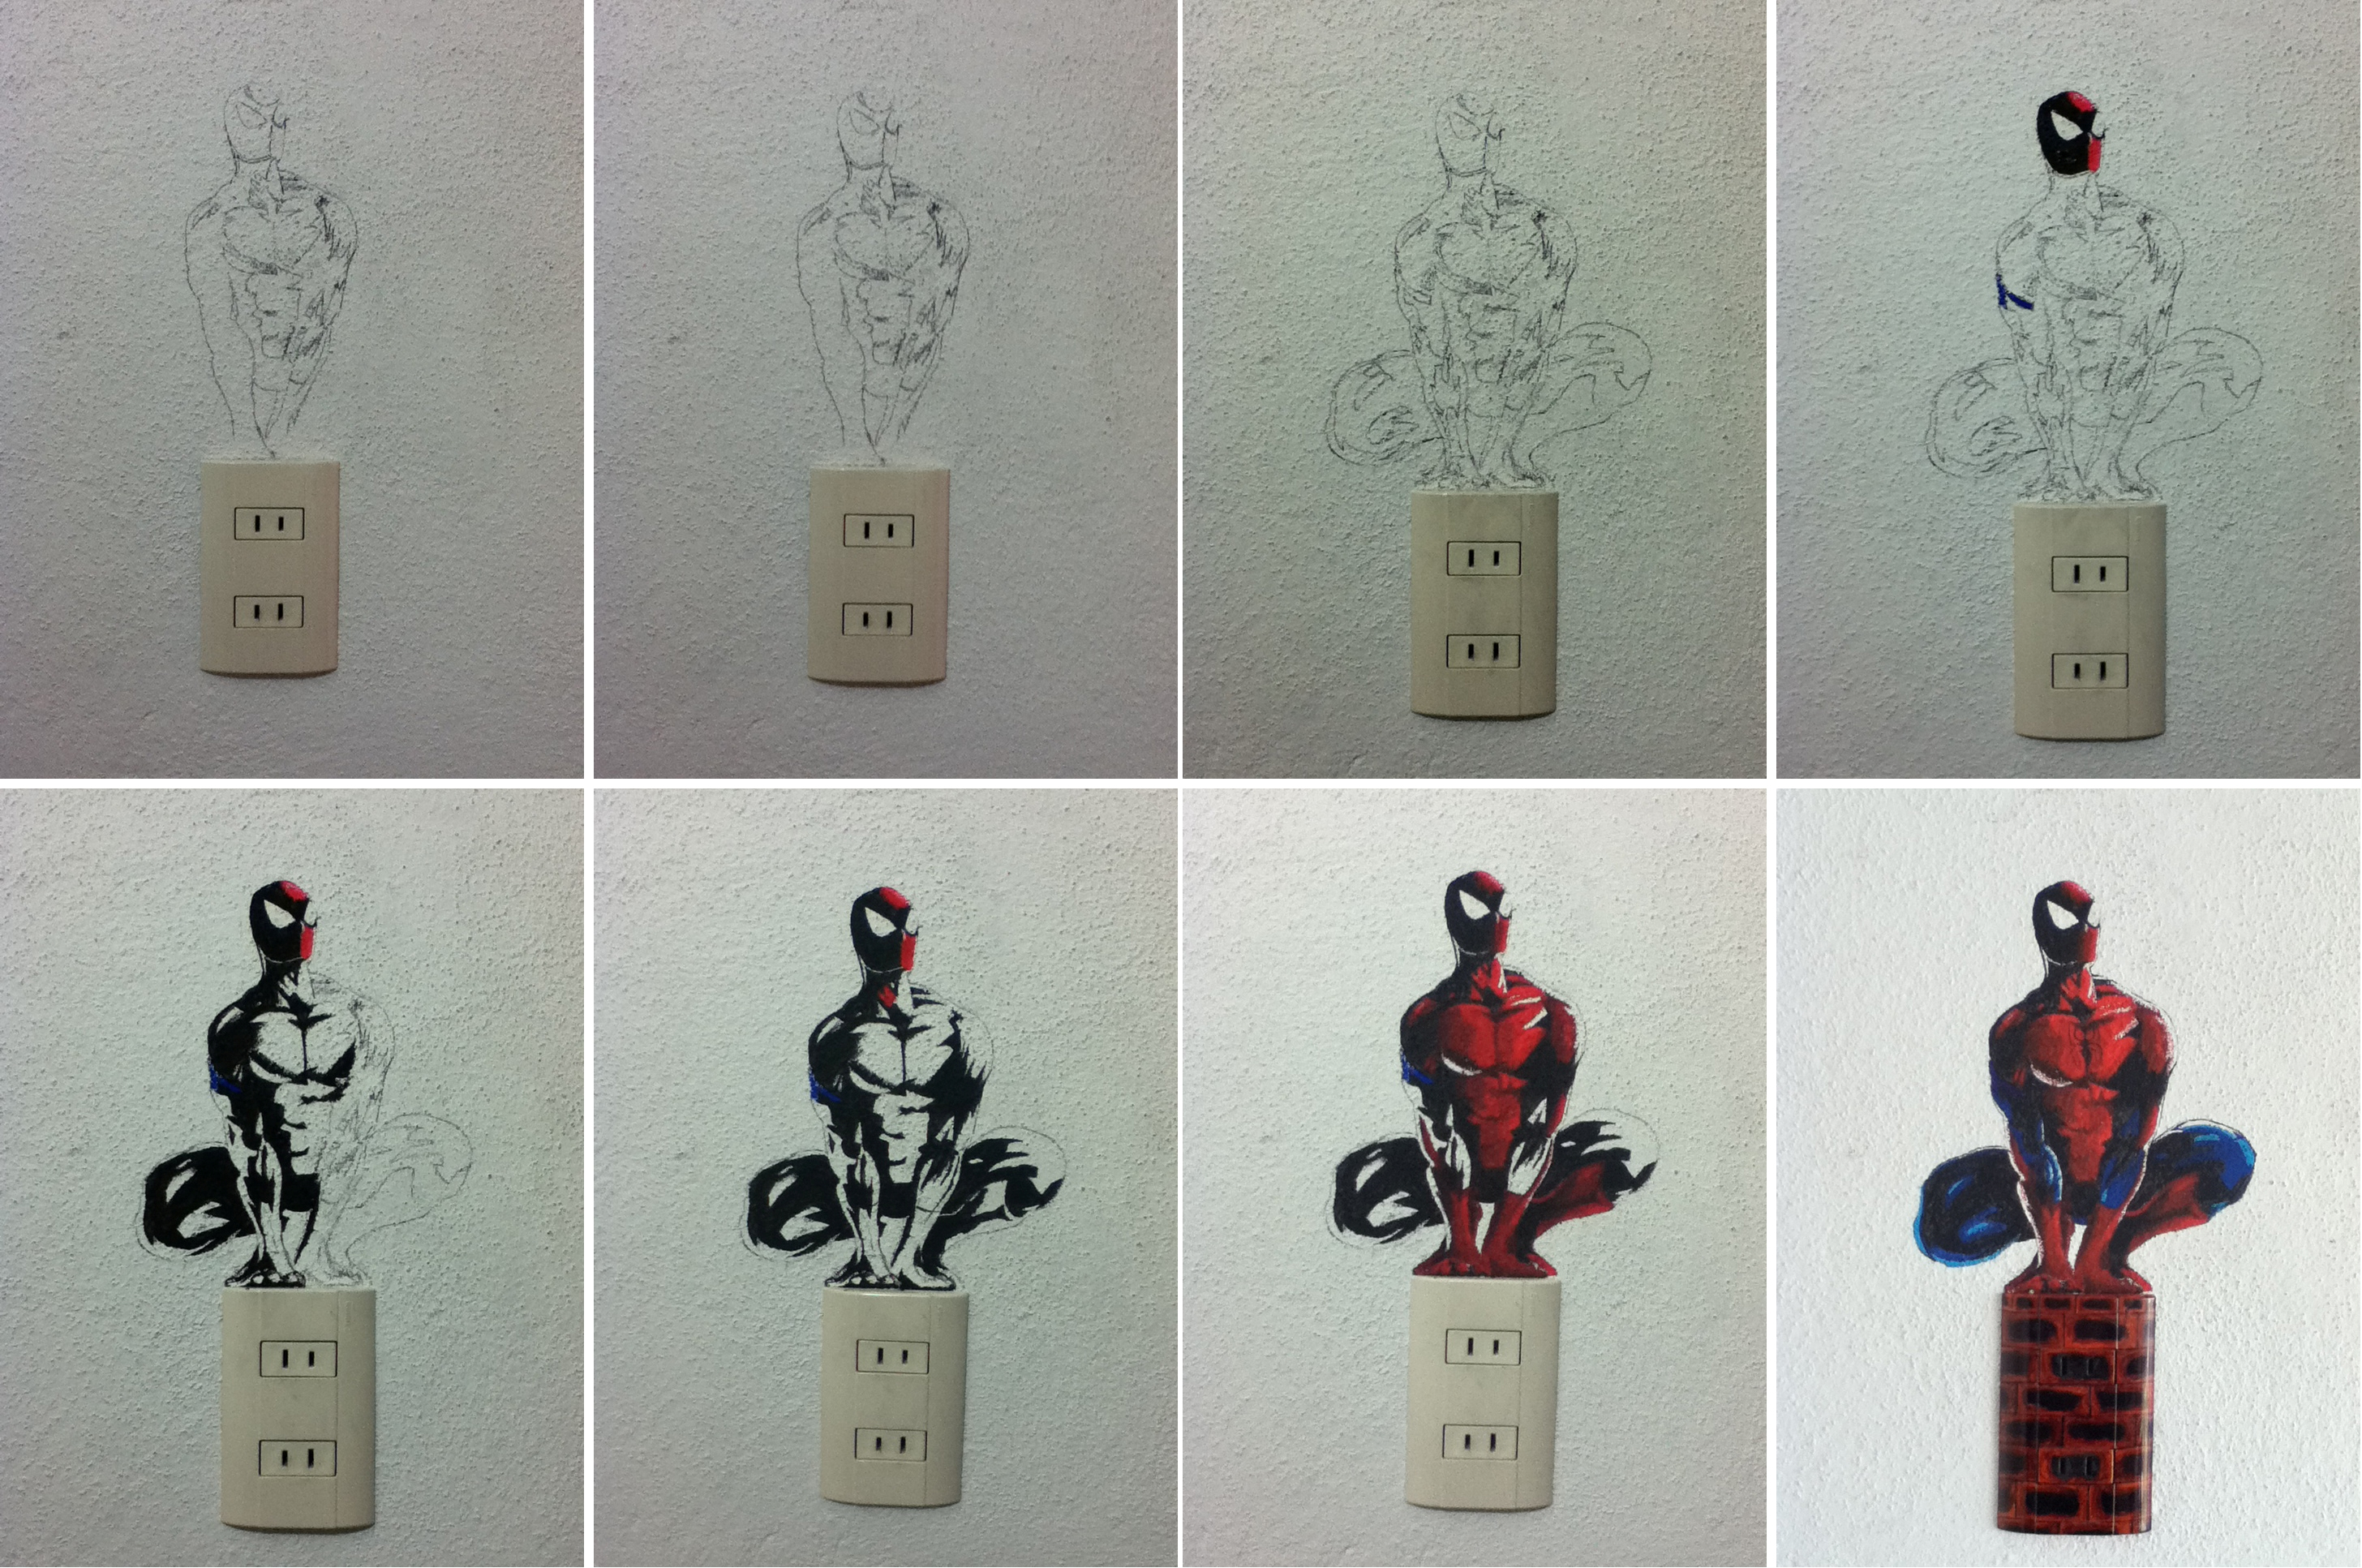 spiderman on the wall process by slan 12 on deviantart